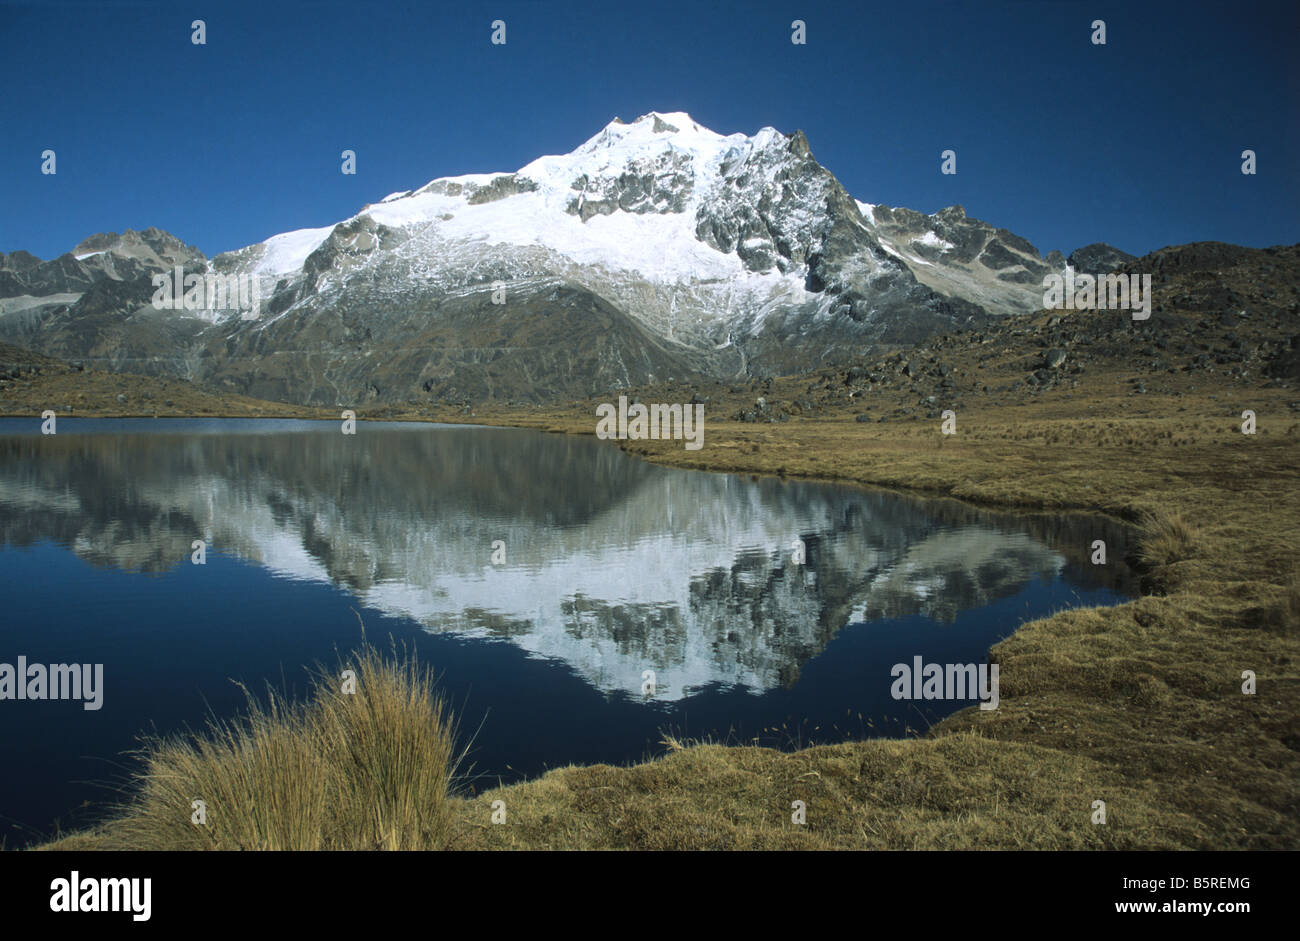 Mt Huayna Potosi reflected in lake, Cordillera Real, Bolivia Stock Photo